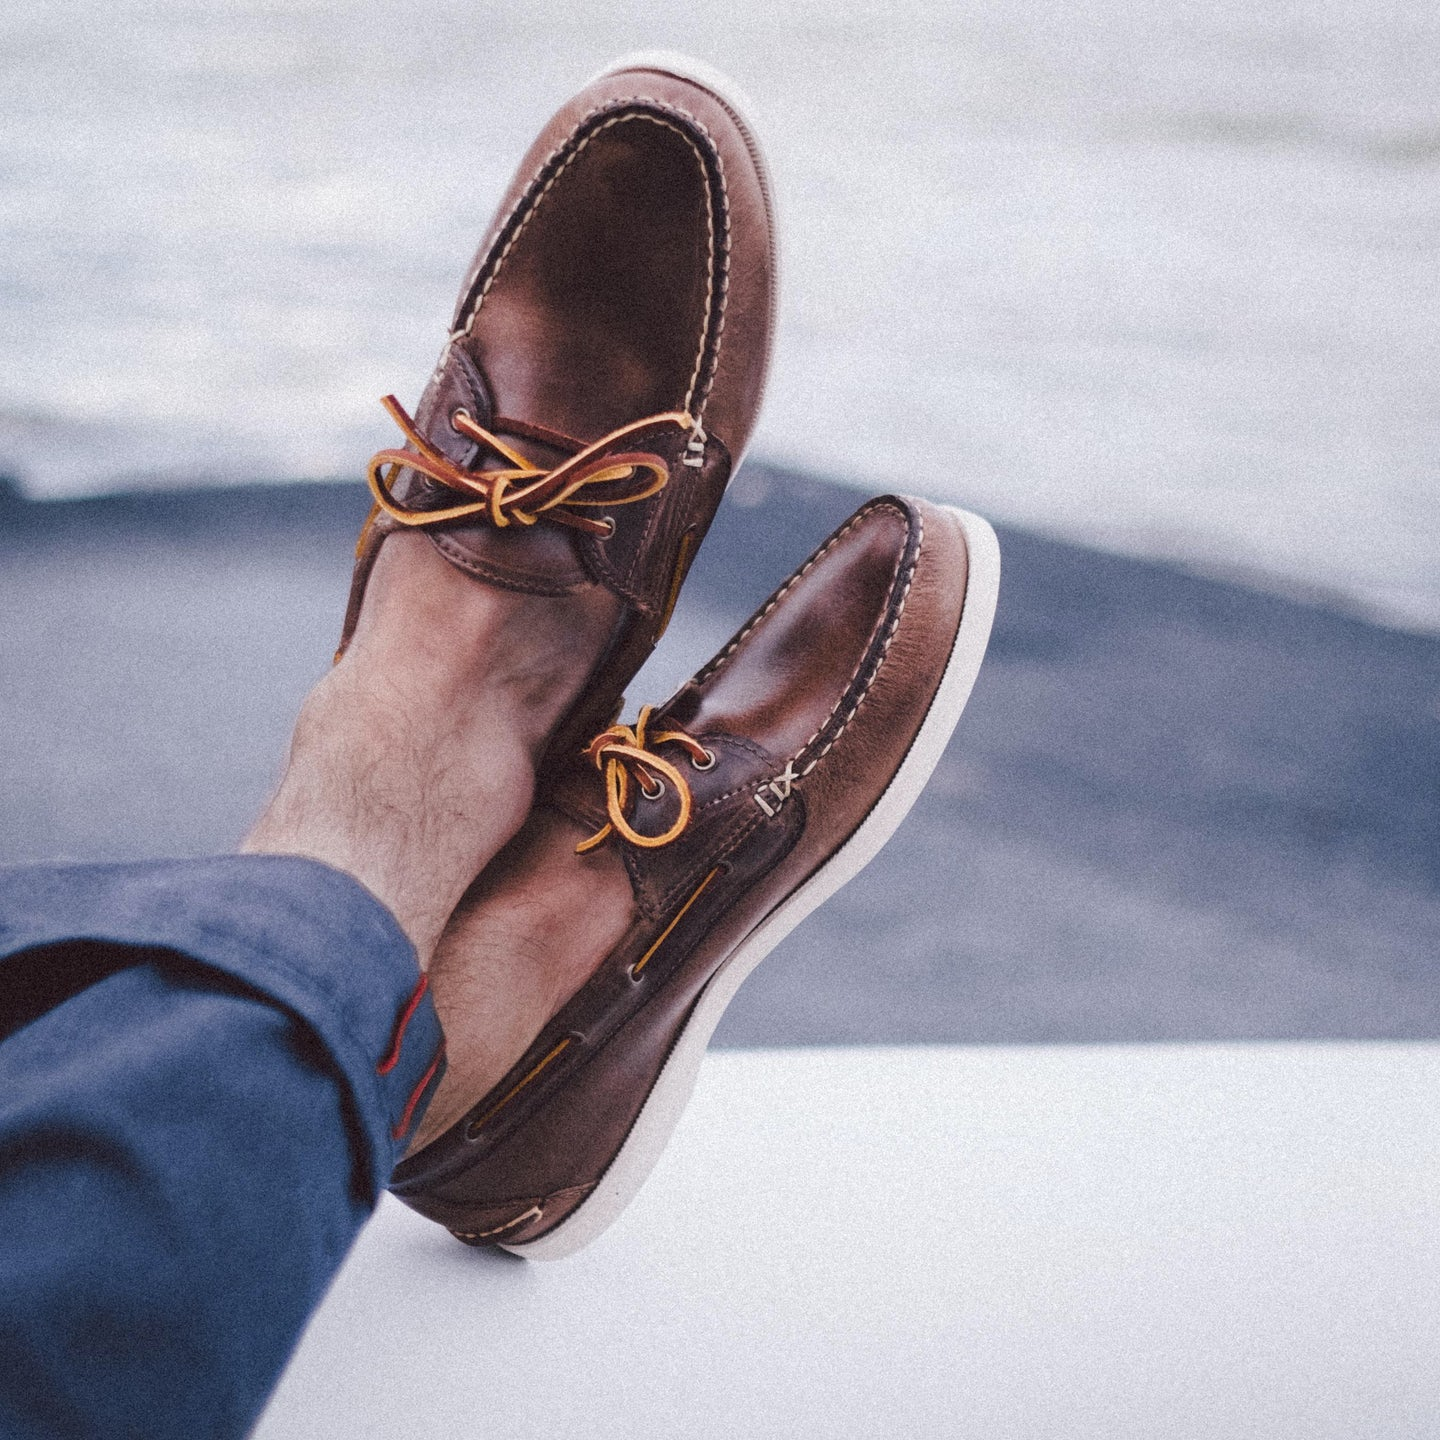 Natural Chromexcel Boat Shoe - Feature Image